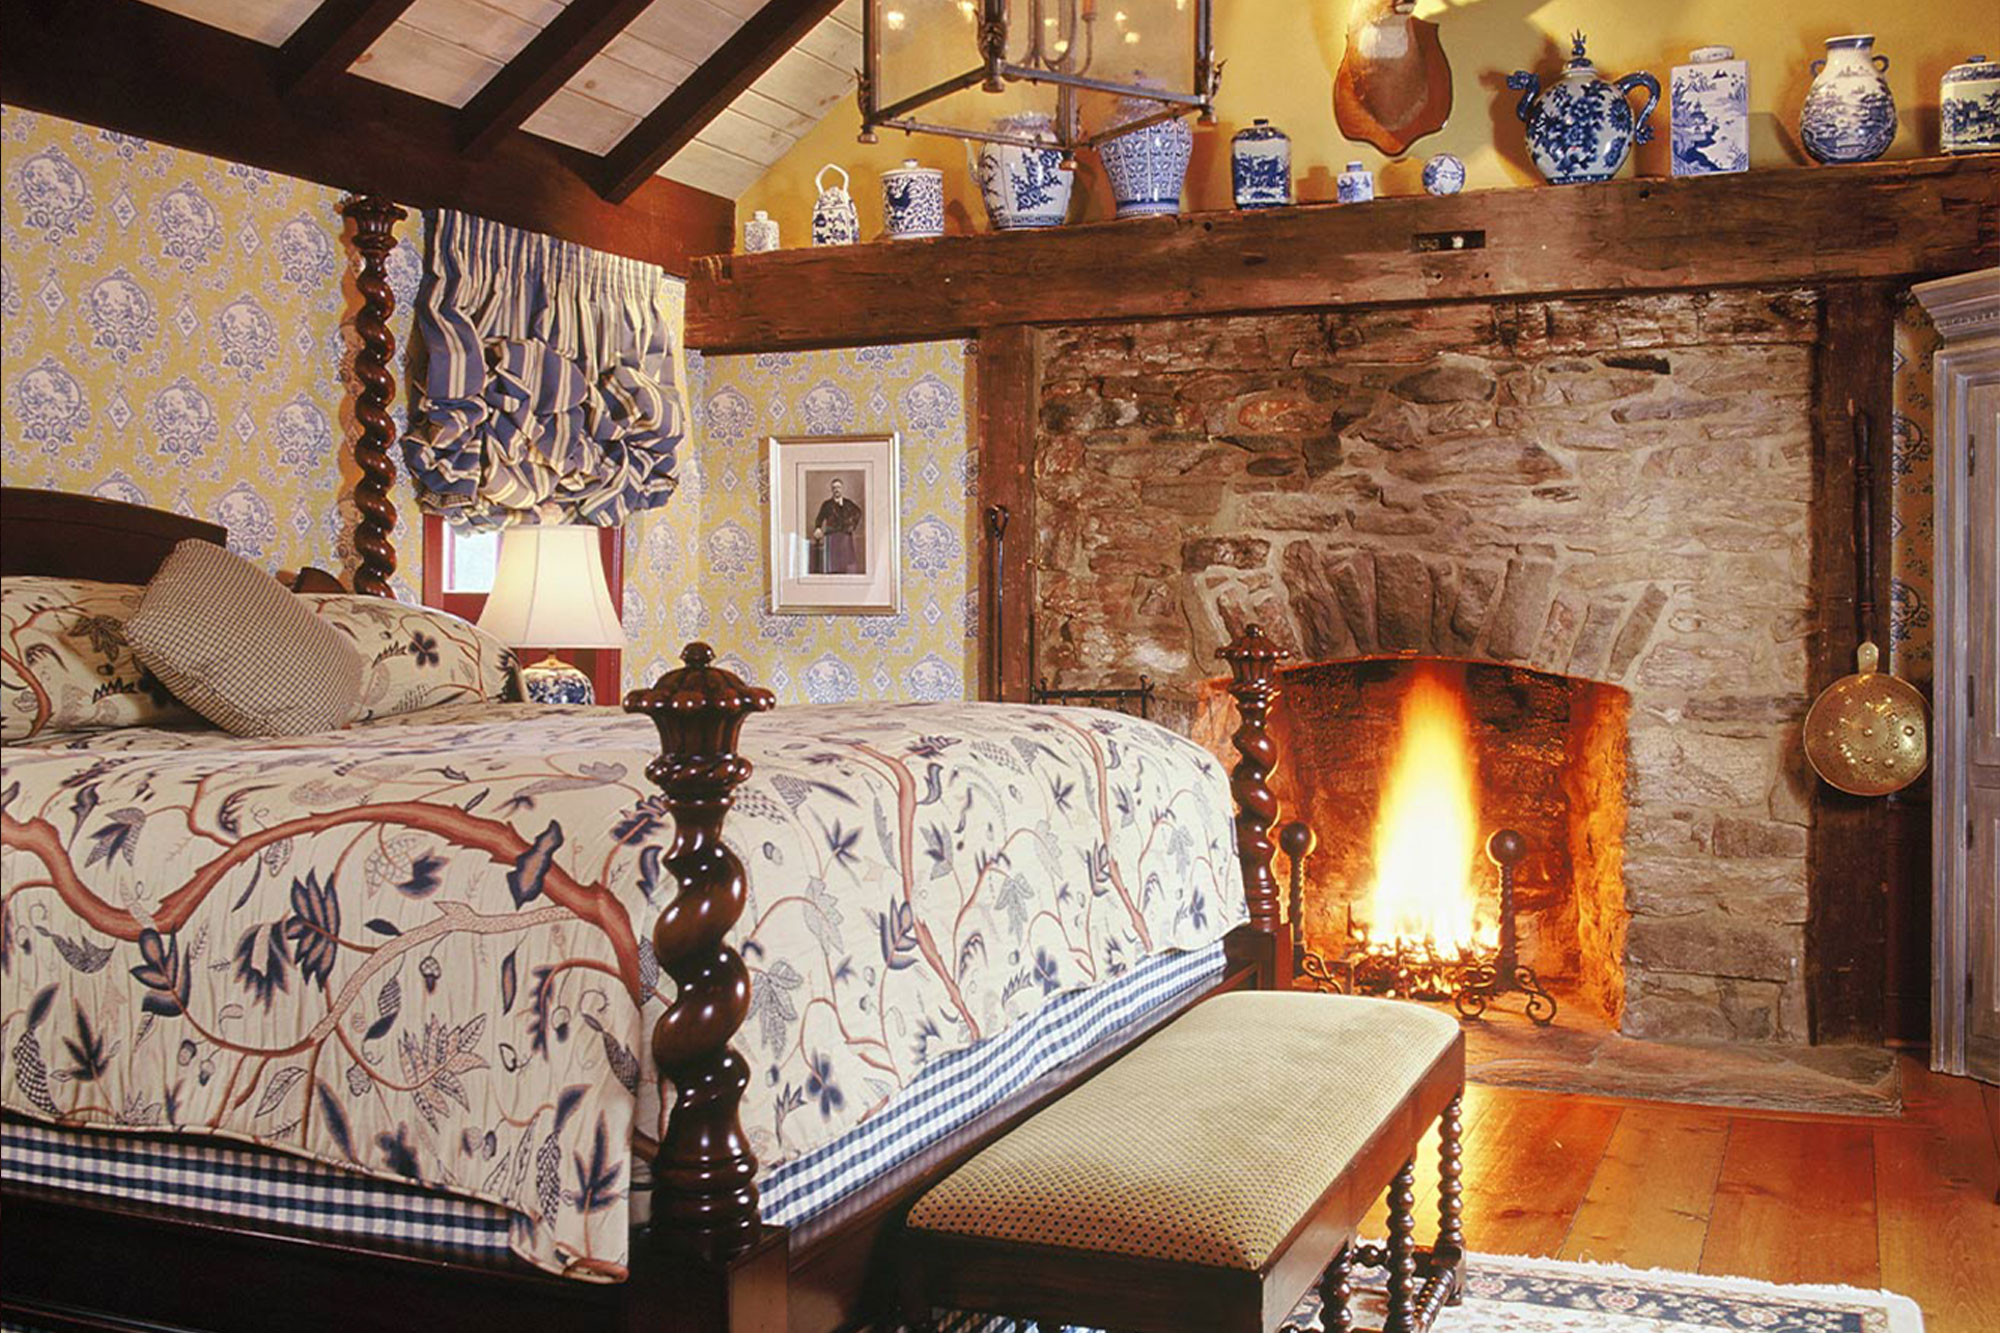 A large master bedroom featuring hardwood floors, a king sized bed and large stone fireplace with a blazing fire inside.